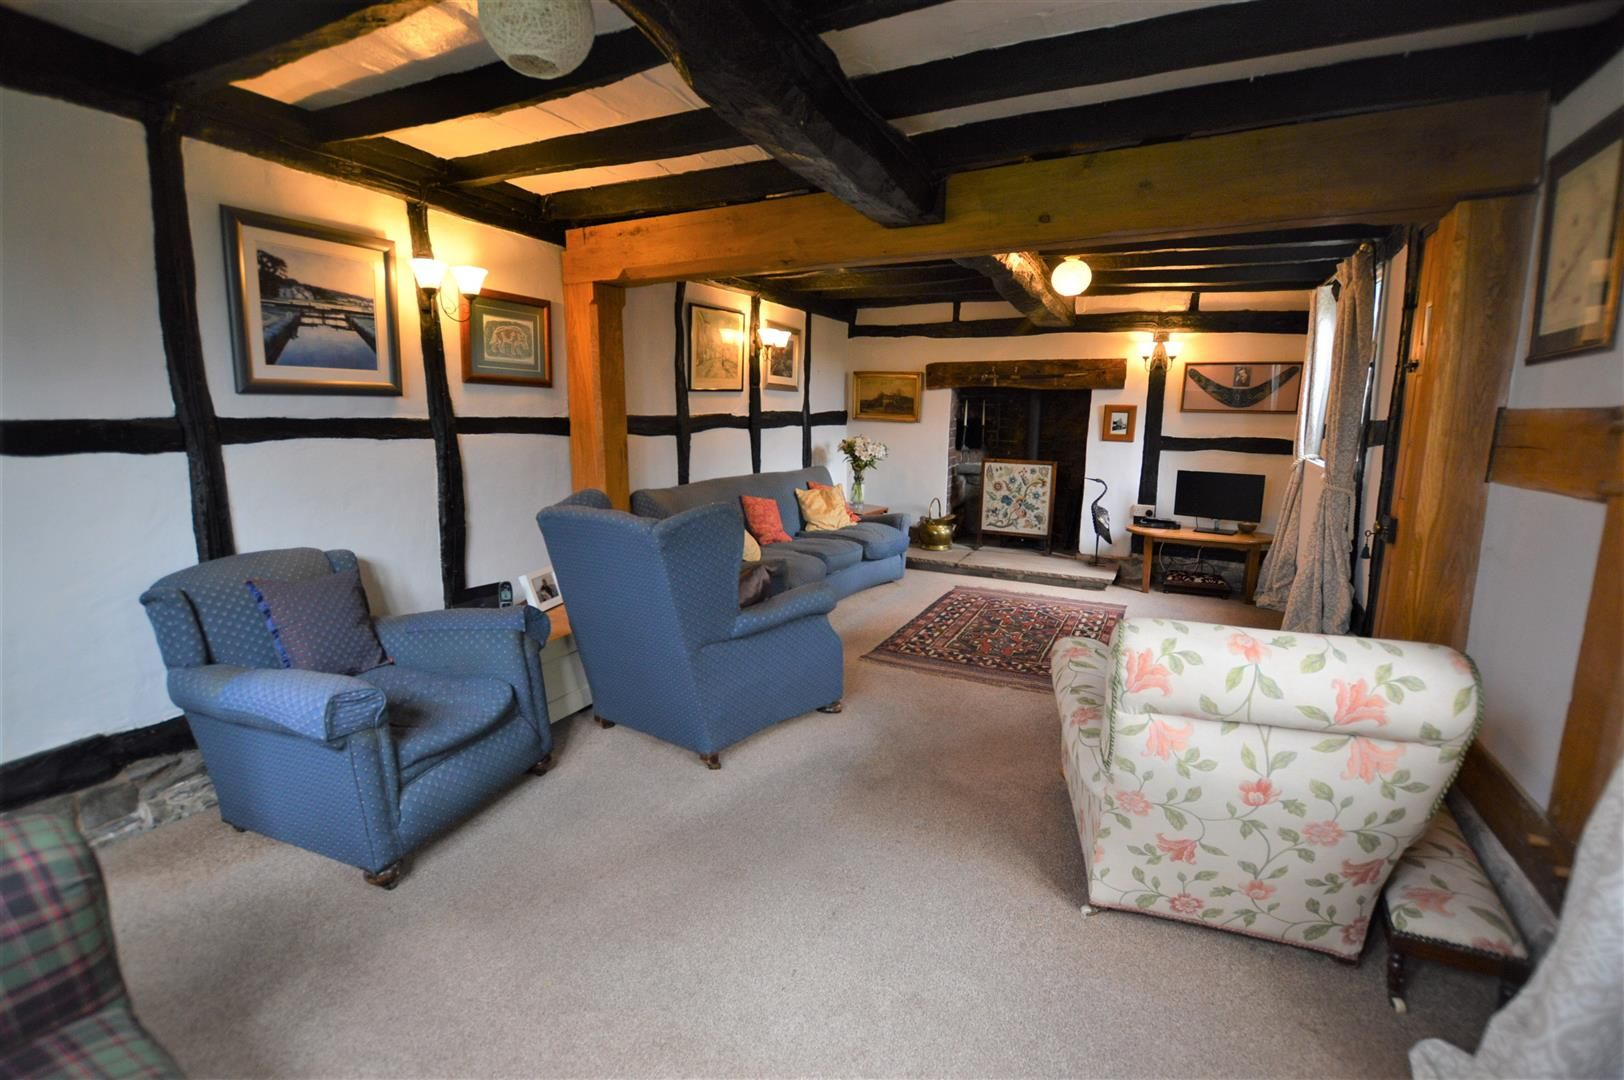 4 bed detached for sale in Shirlheath  - Property Image 3